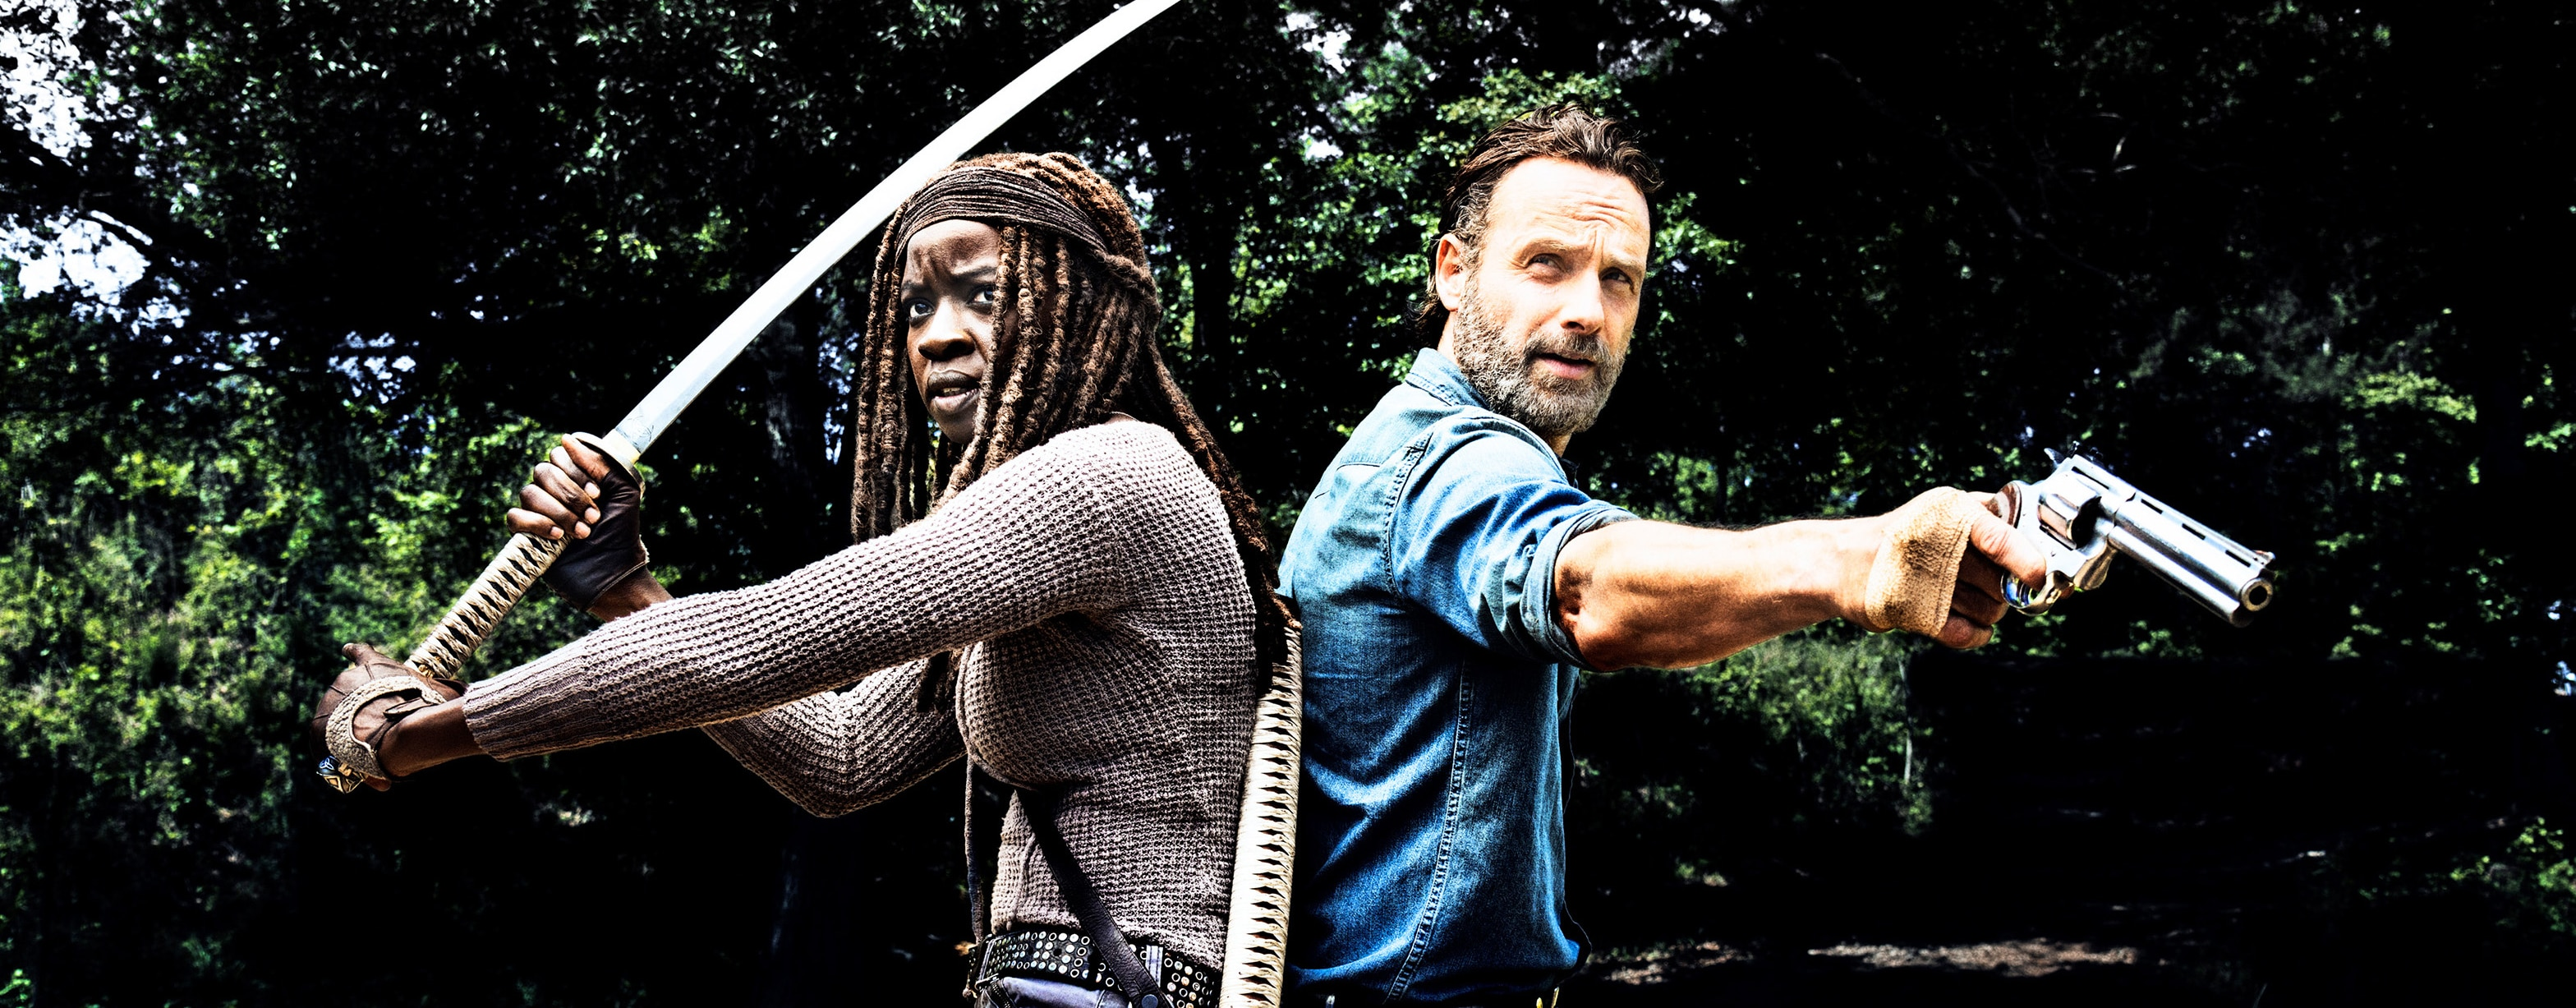 Showdown bei RTL II: The Walking Dead – Staffel 8